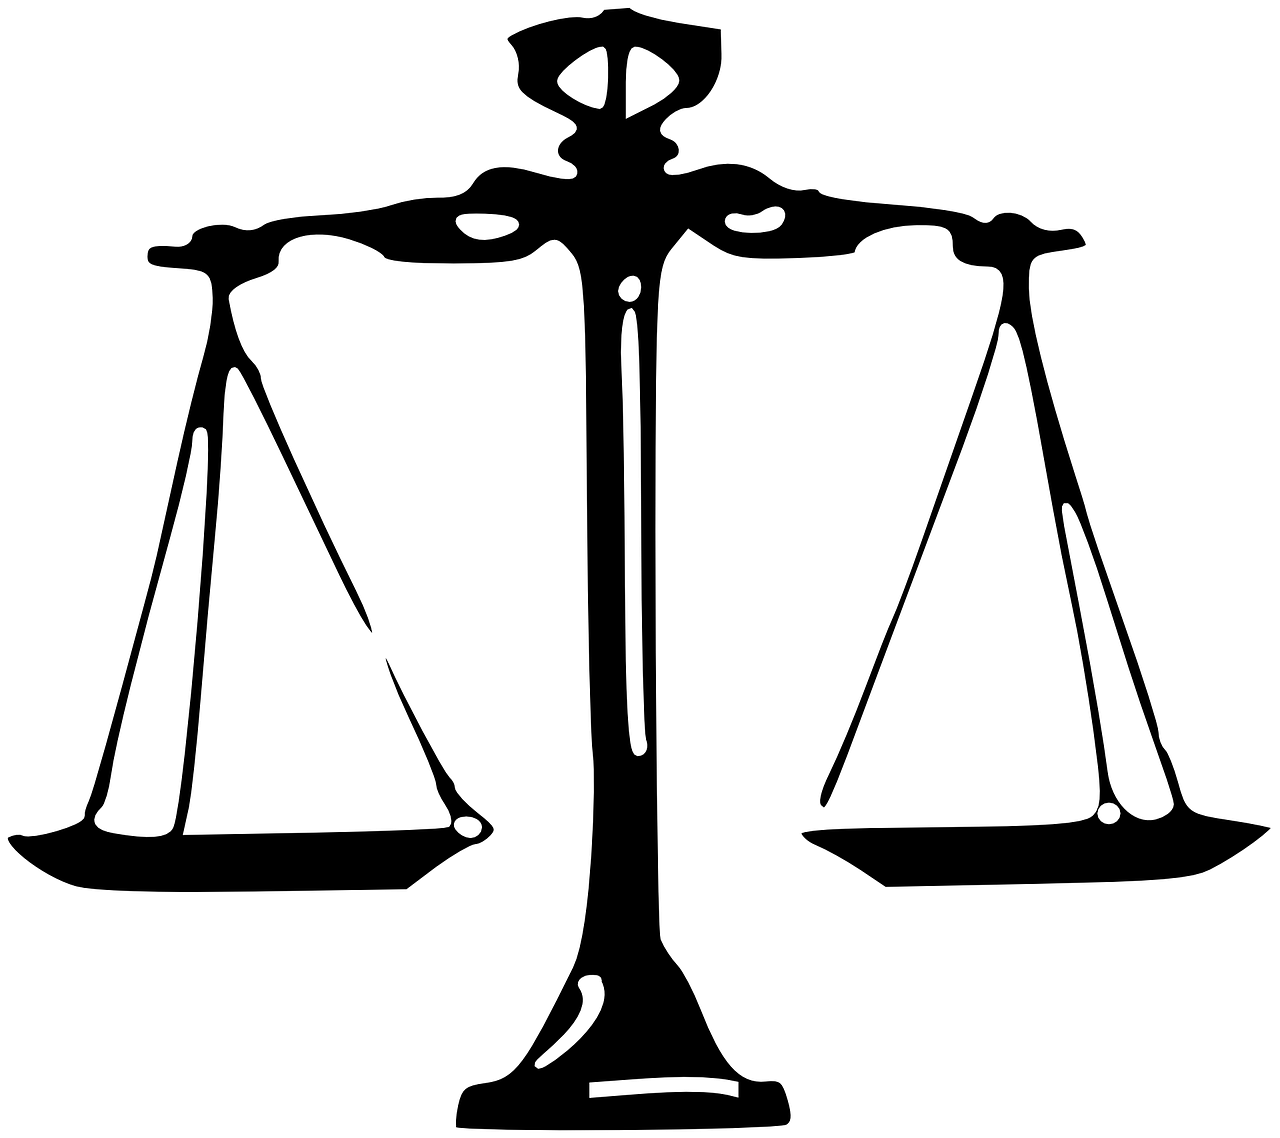 Justice clipart scales justice. Measuring computer icons clip